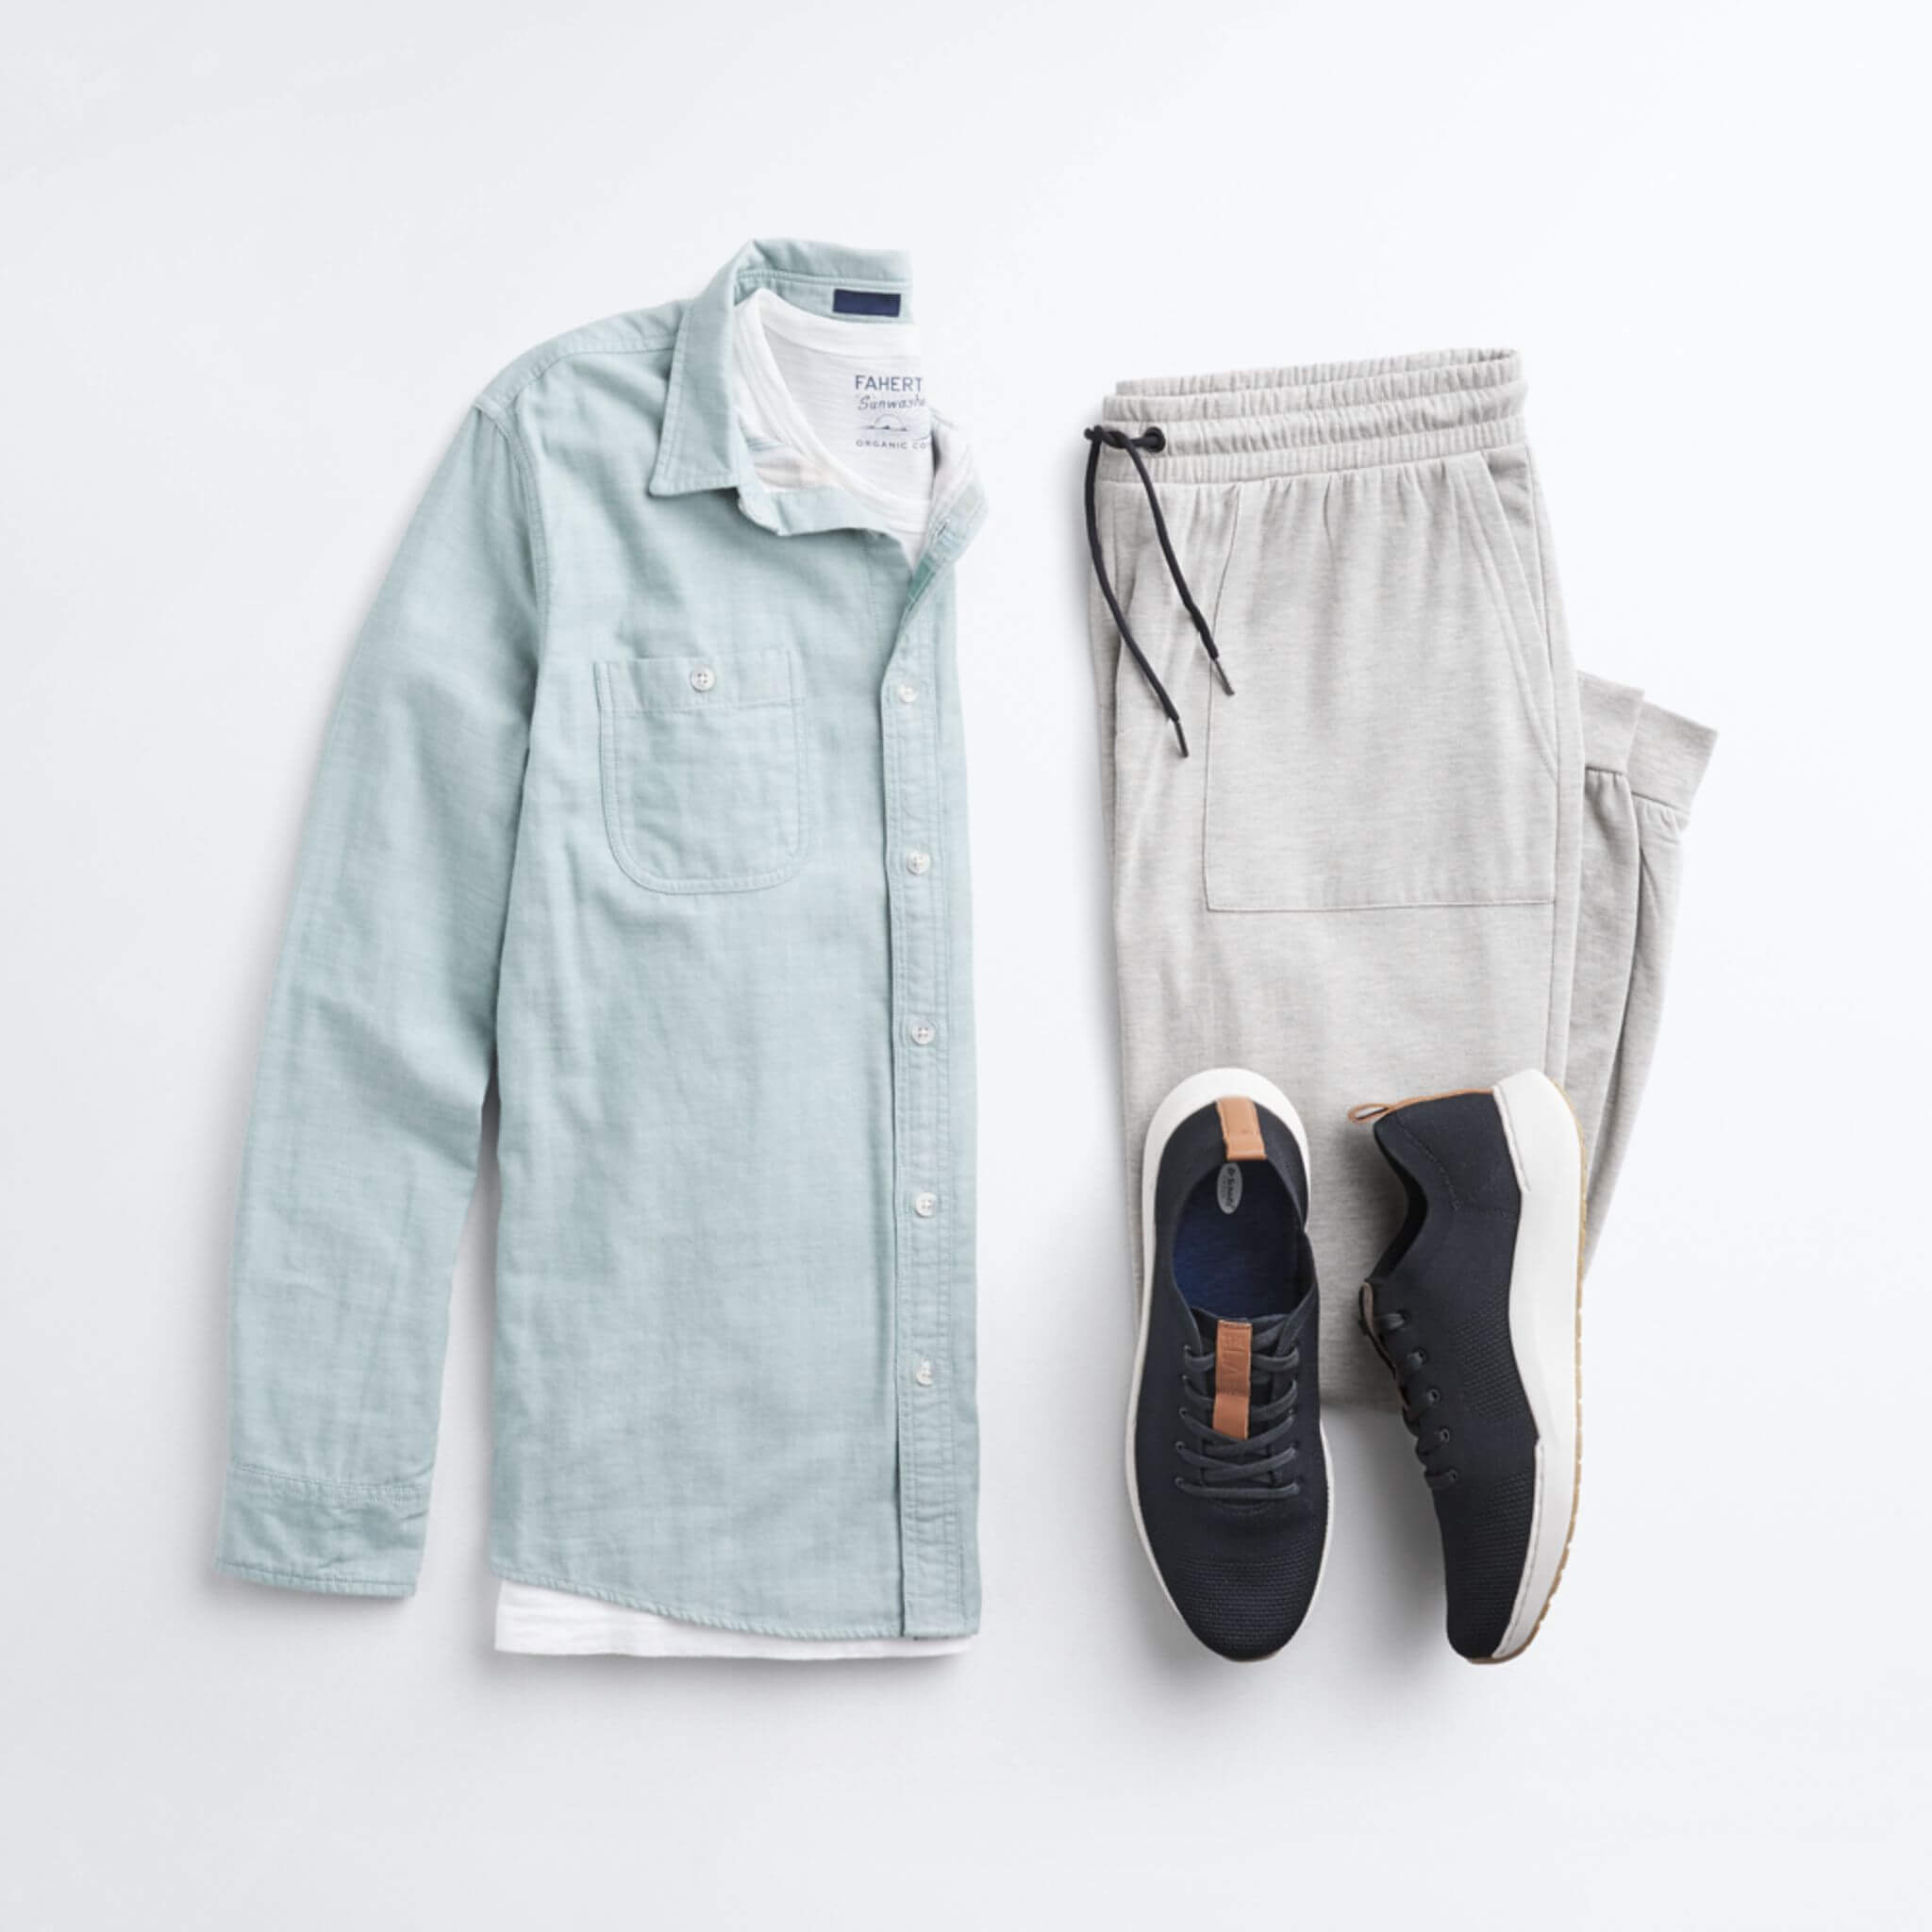 Stitch Fix Men's outfit laydown featuring a light green button-down shirt over a white crewneck t-shirt, next to grey joggers and black sneakers.